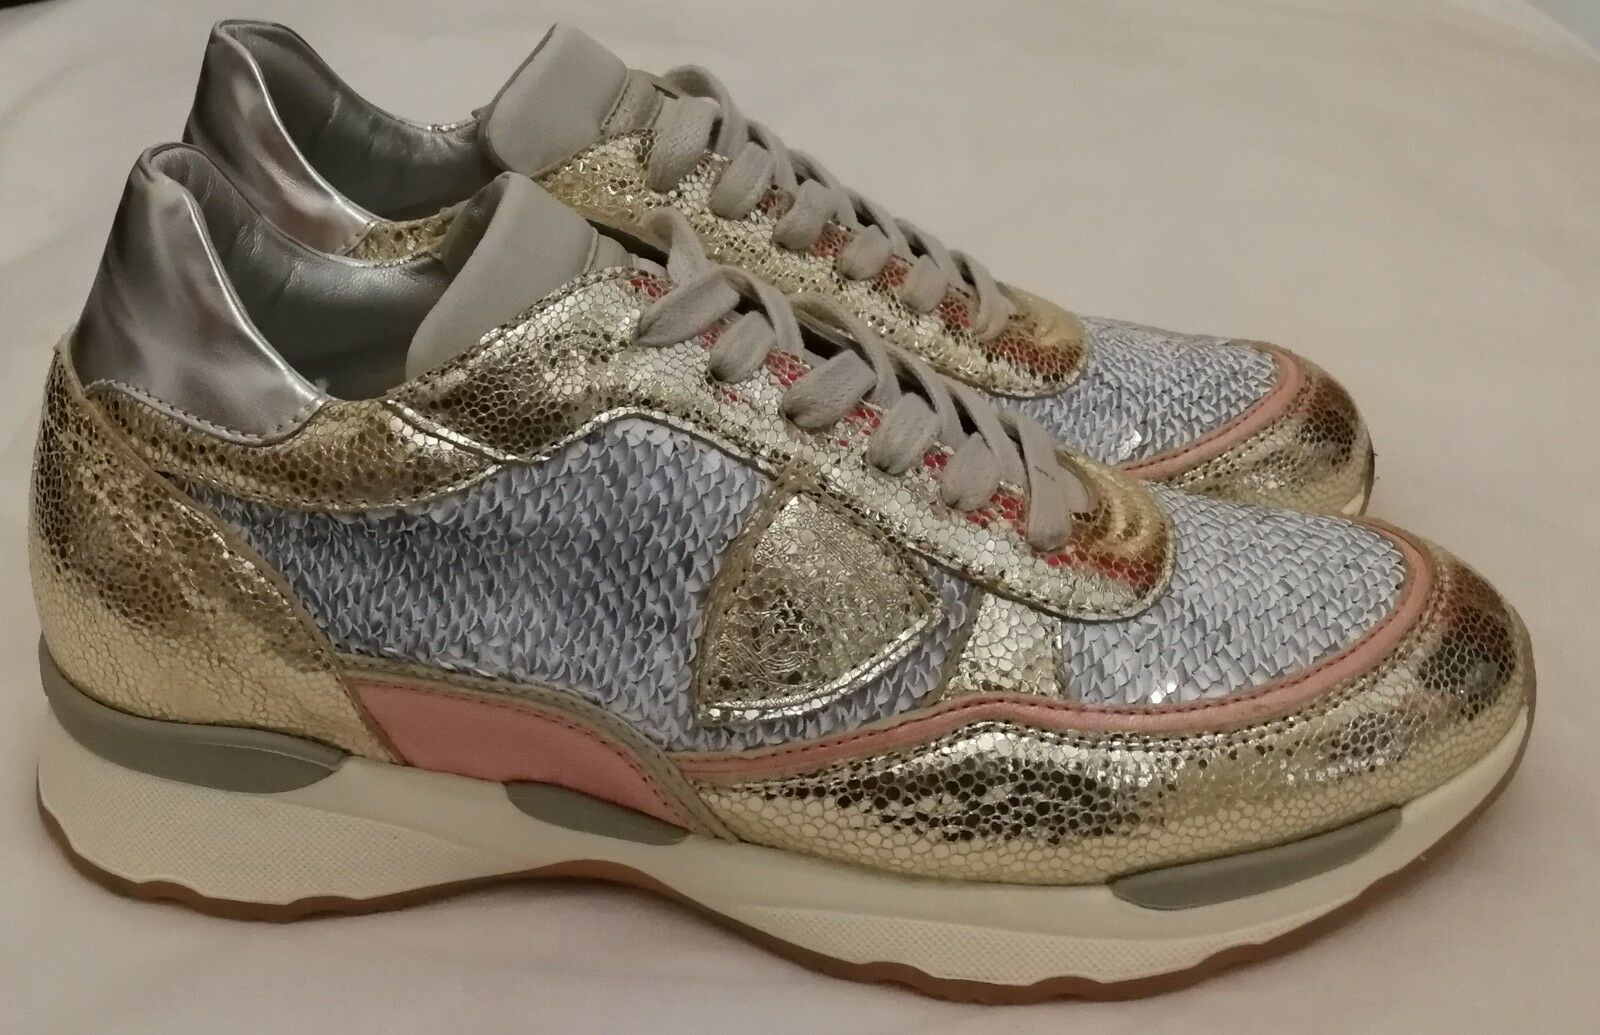 Philippe Model Tropez  Lace-up Sneakers Trainers gold Size uk uk uk 5 eu 38 88c548